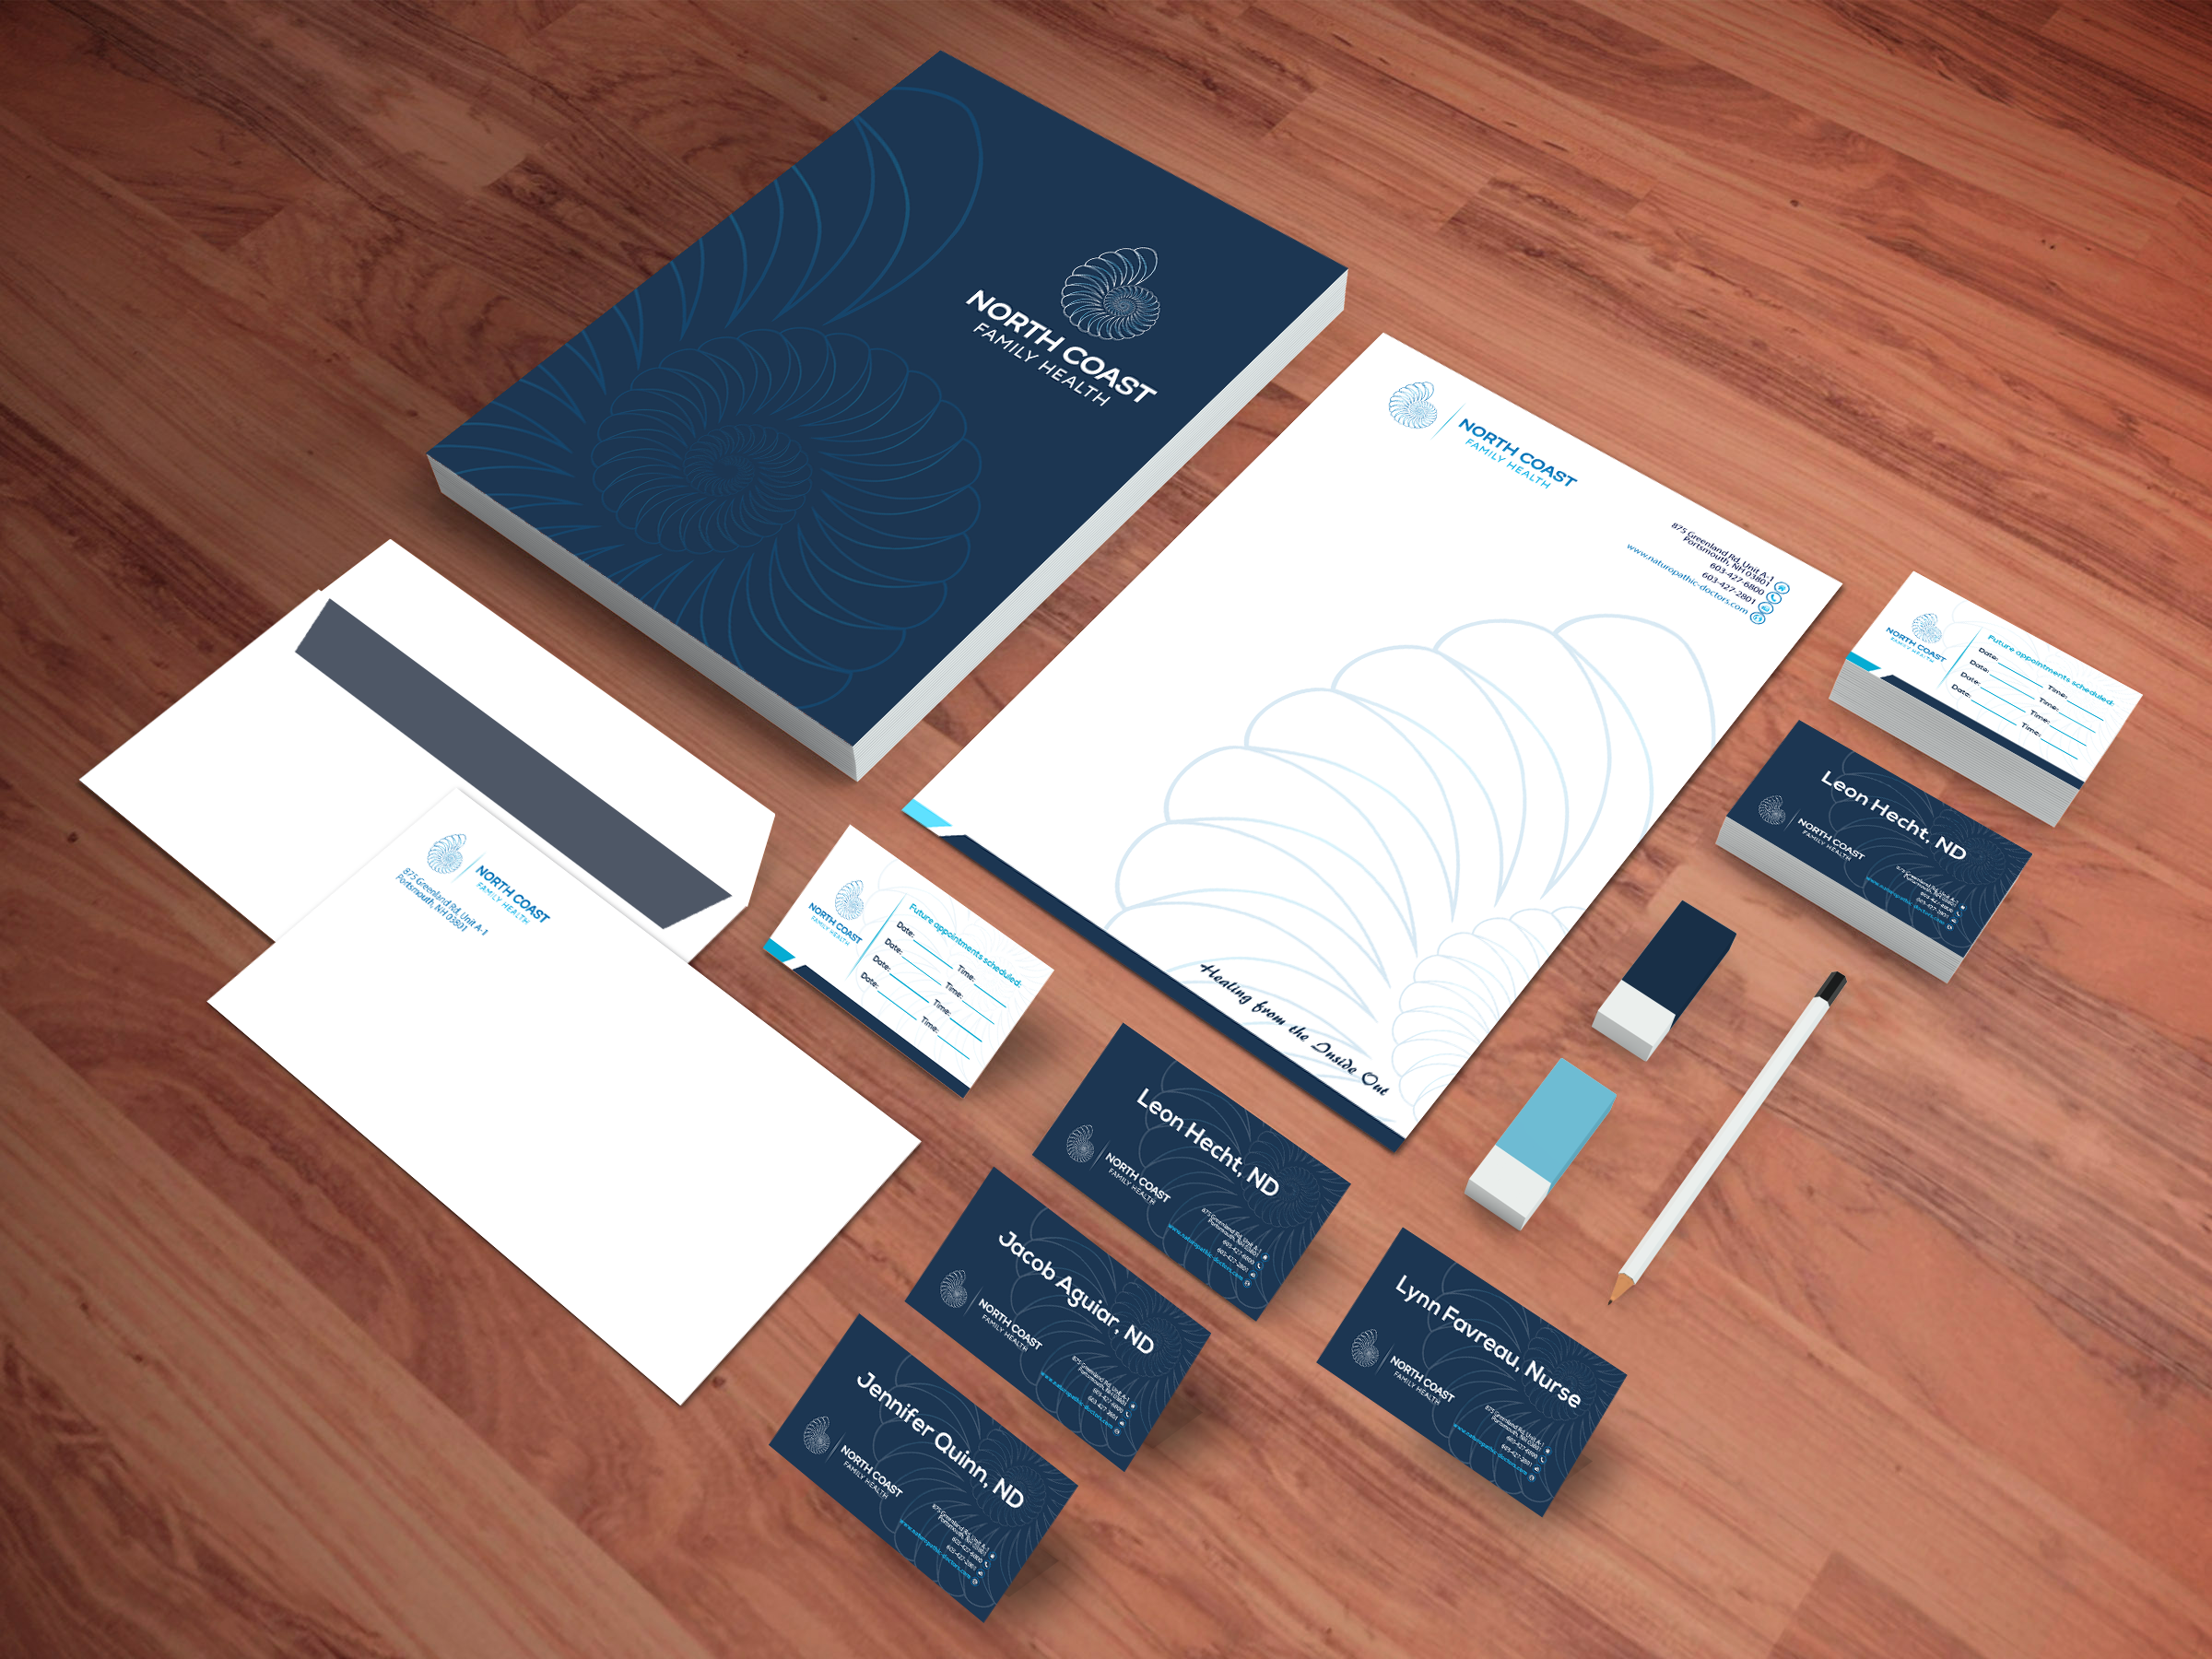 Using the current logo, please design business card and stationary